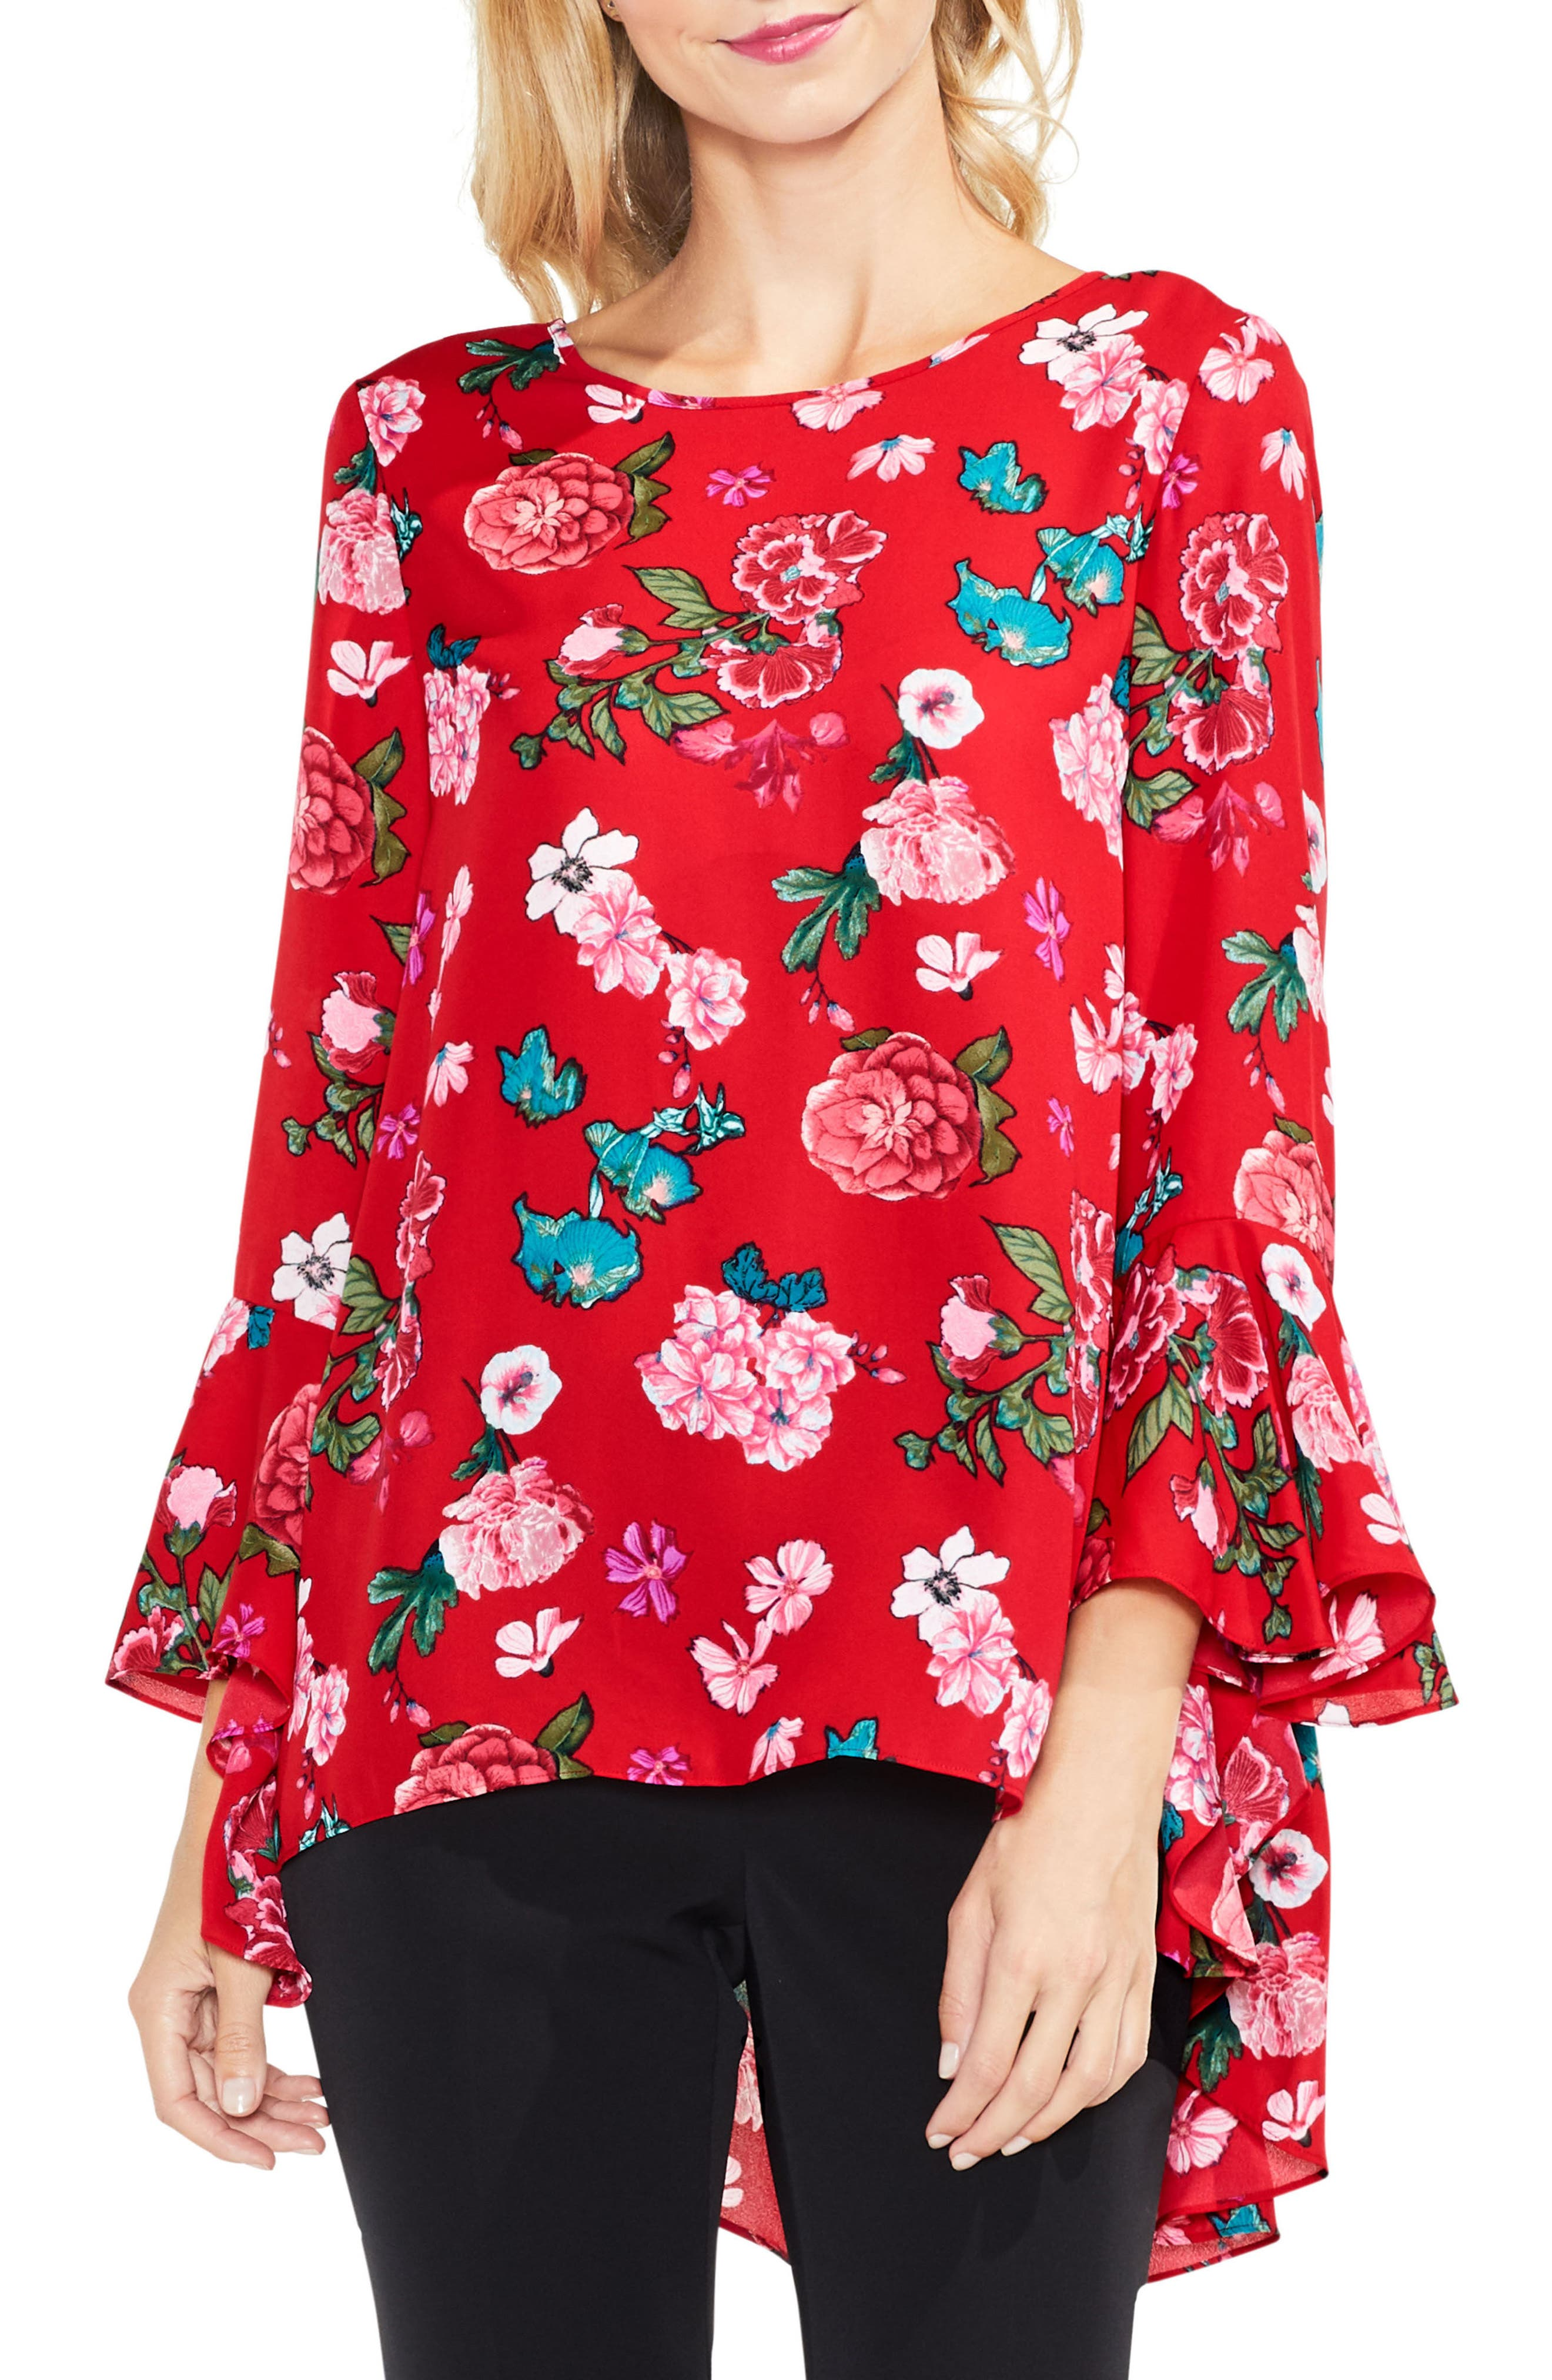 Main Image - Vince Camuto Floral Heirloom Bell Sleeve Top